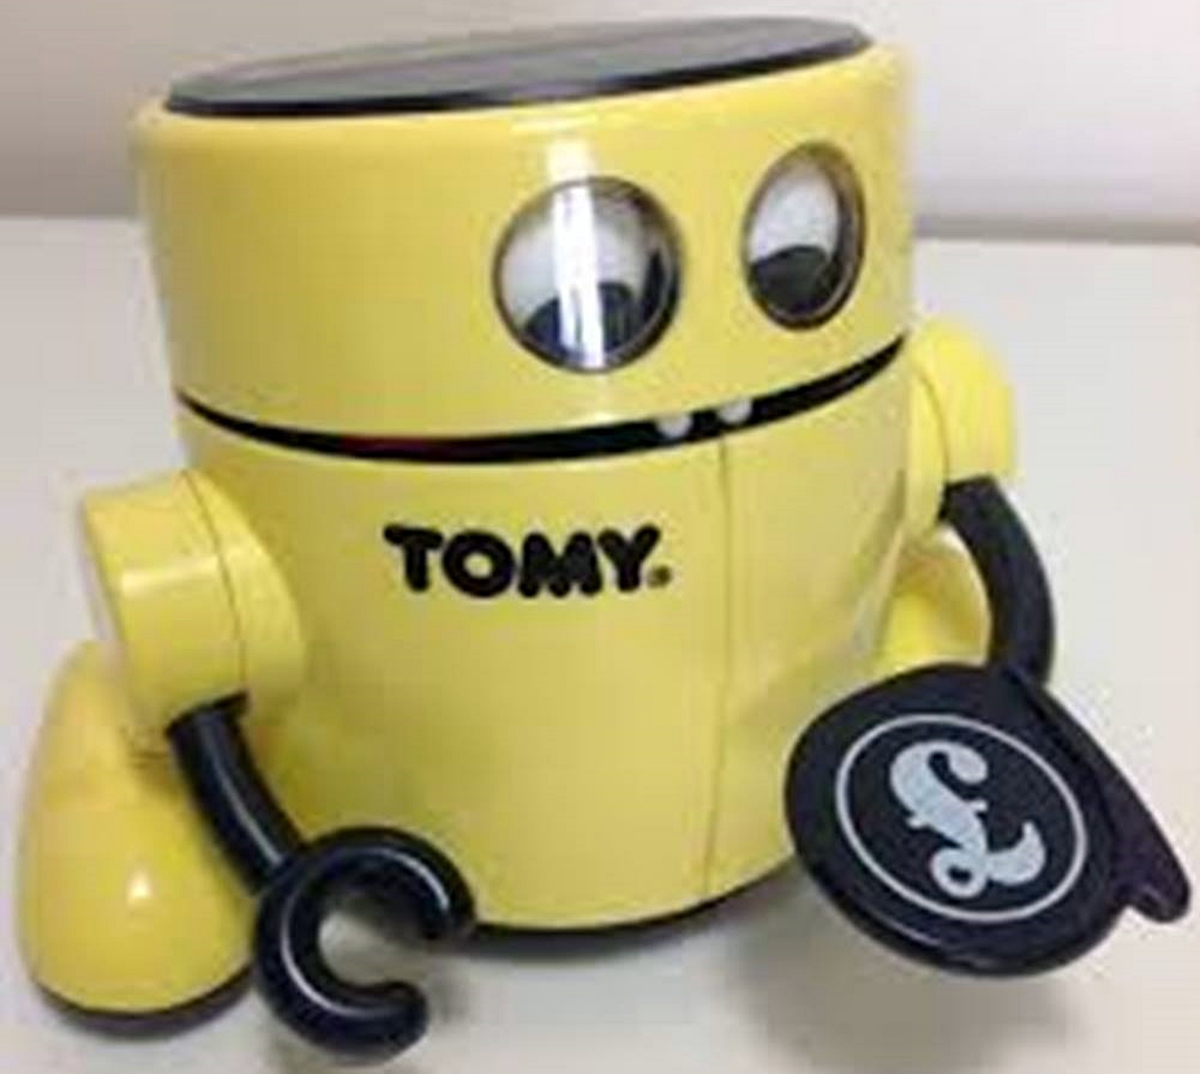 10 11 16 Toys You've Probably Completely Forgotten About